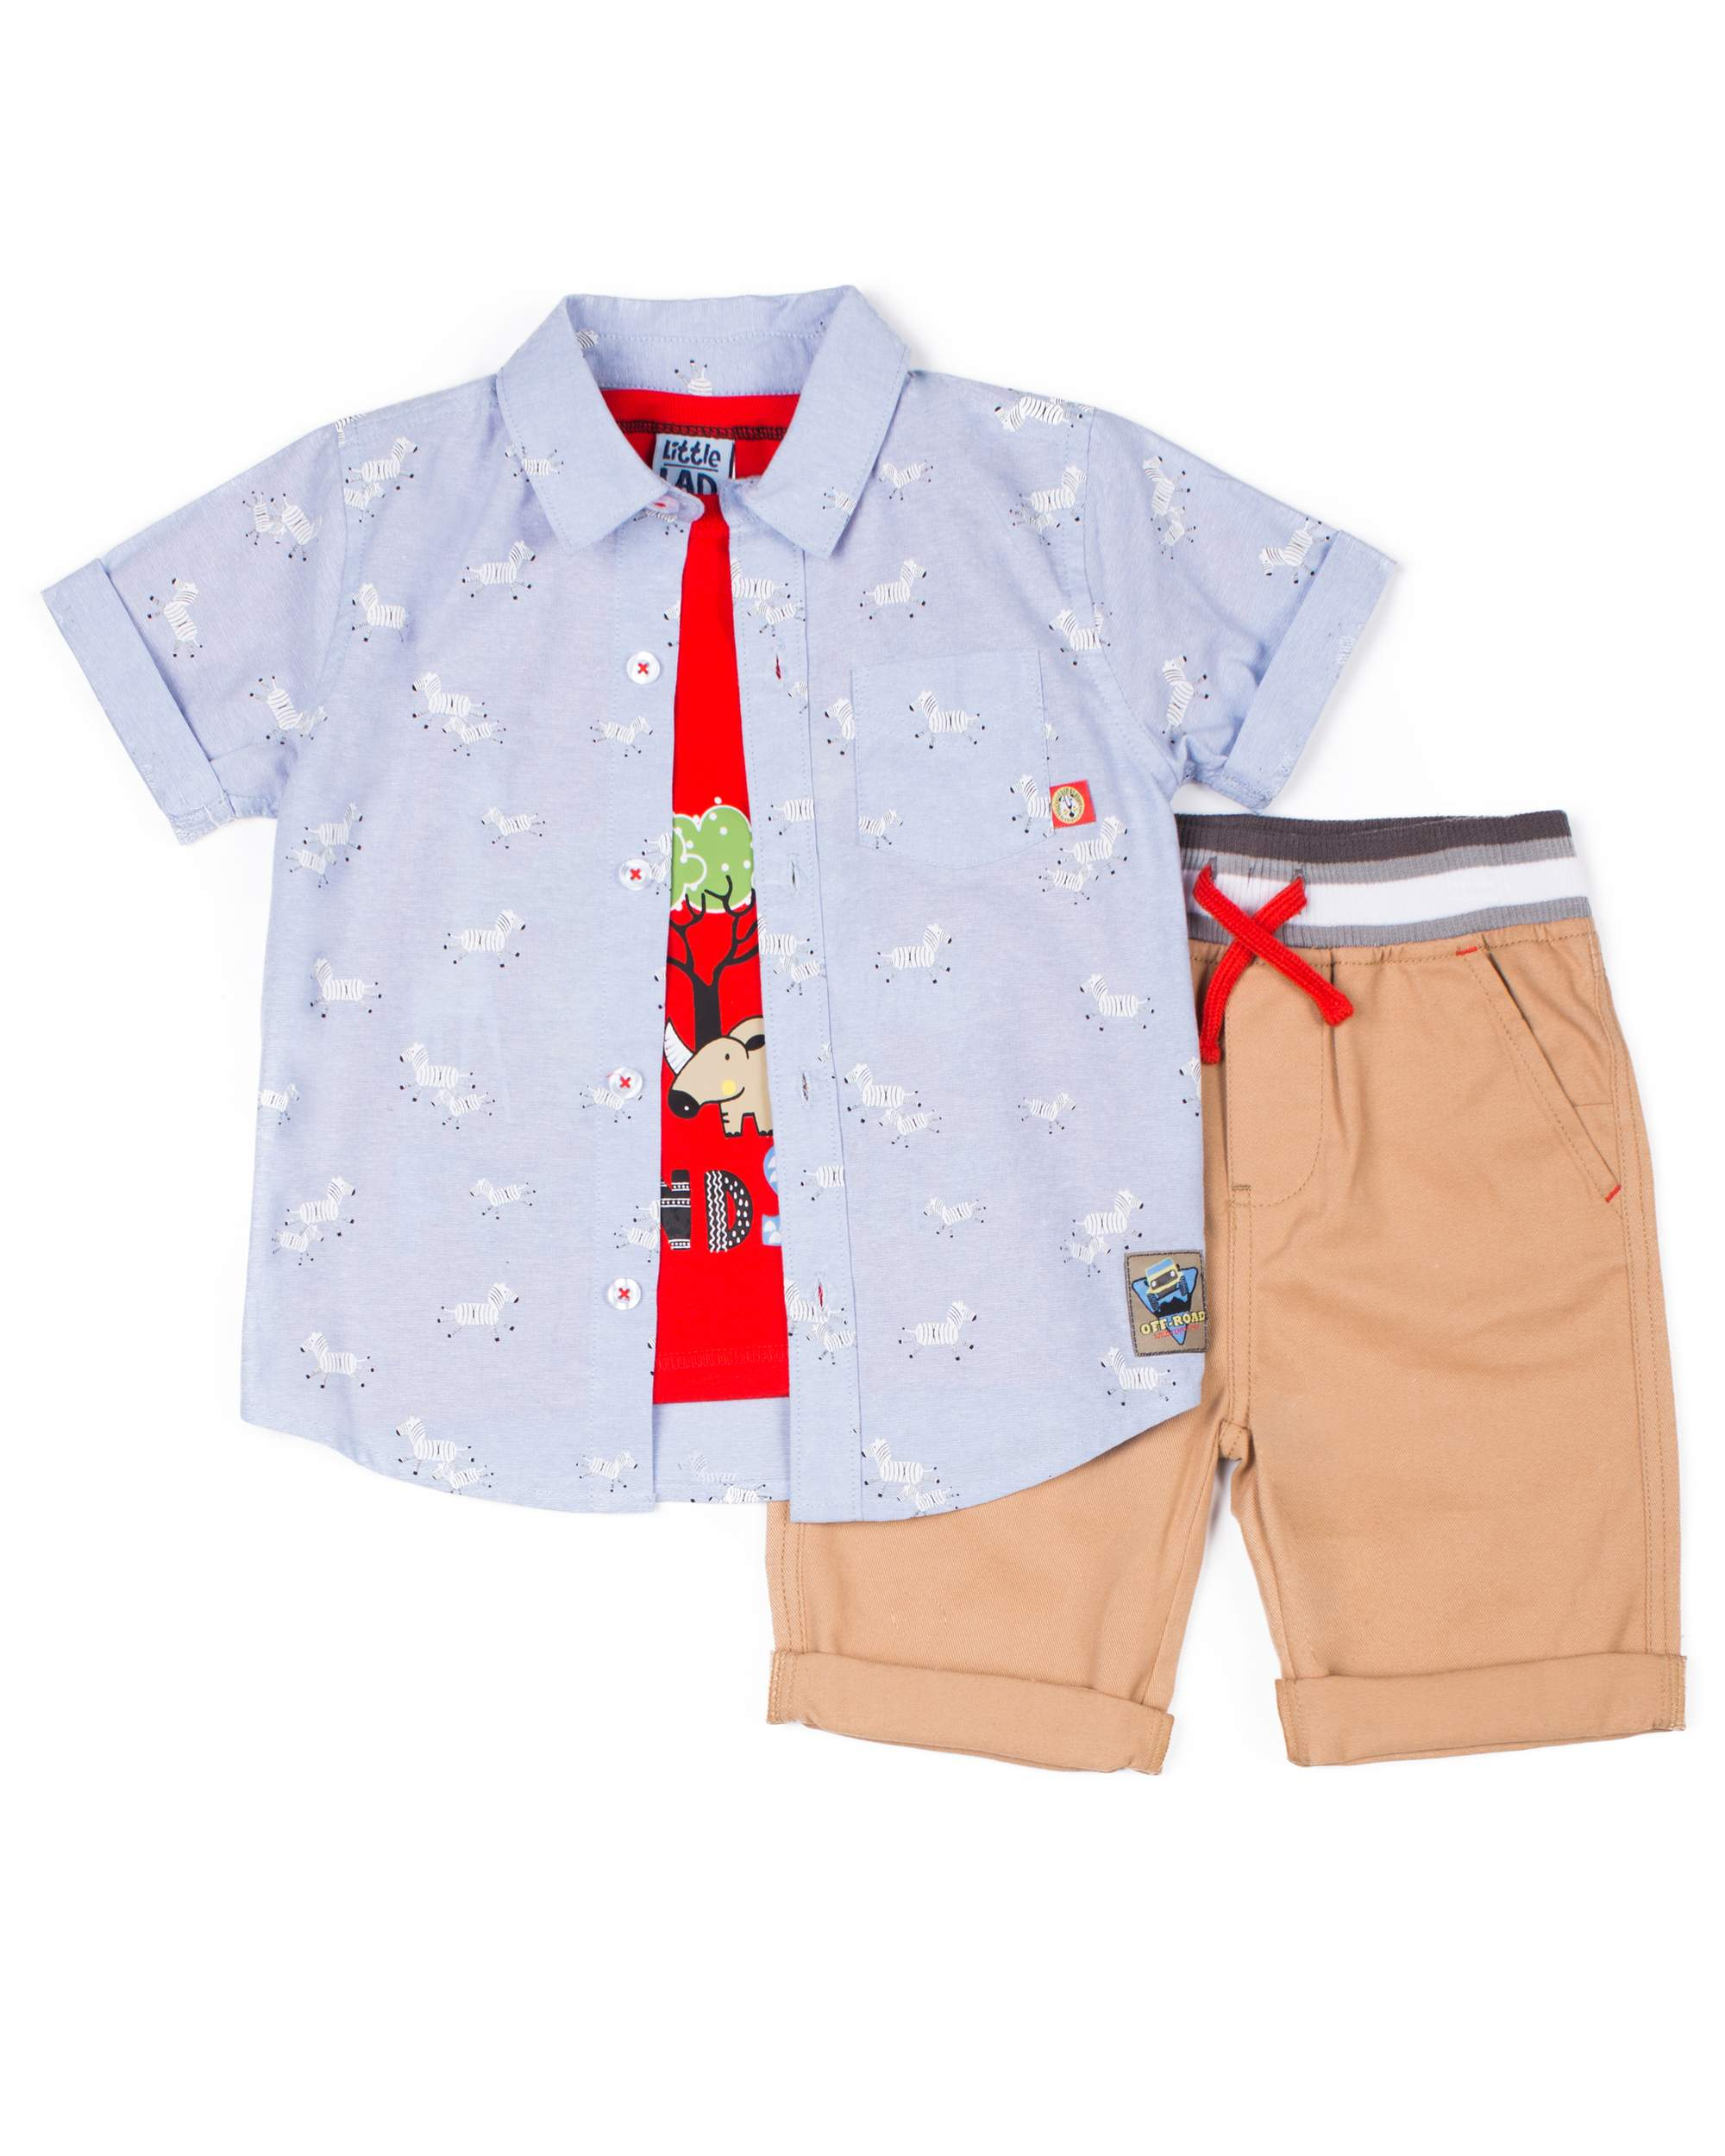 502cc83f0 Little Lad - Short Sleeve Printed Chambray Button Up Shirt